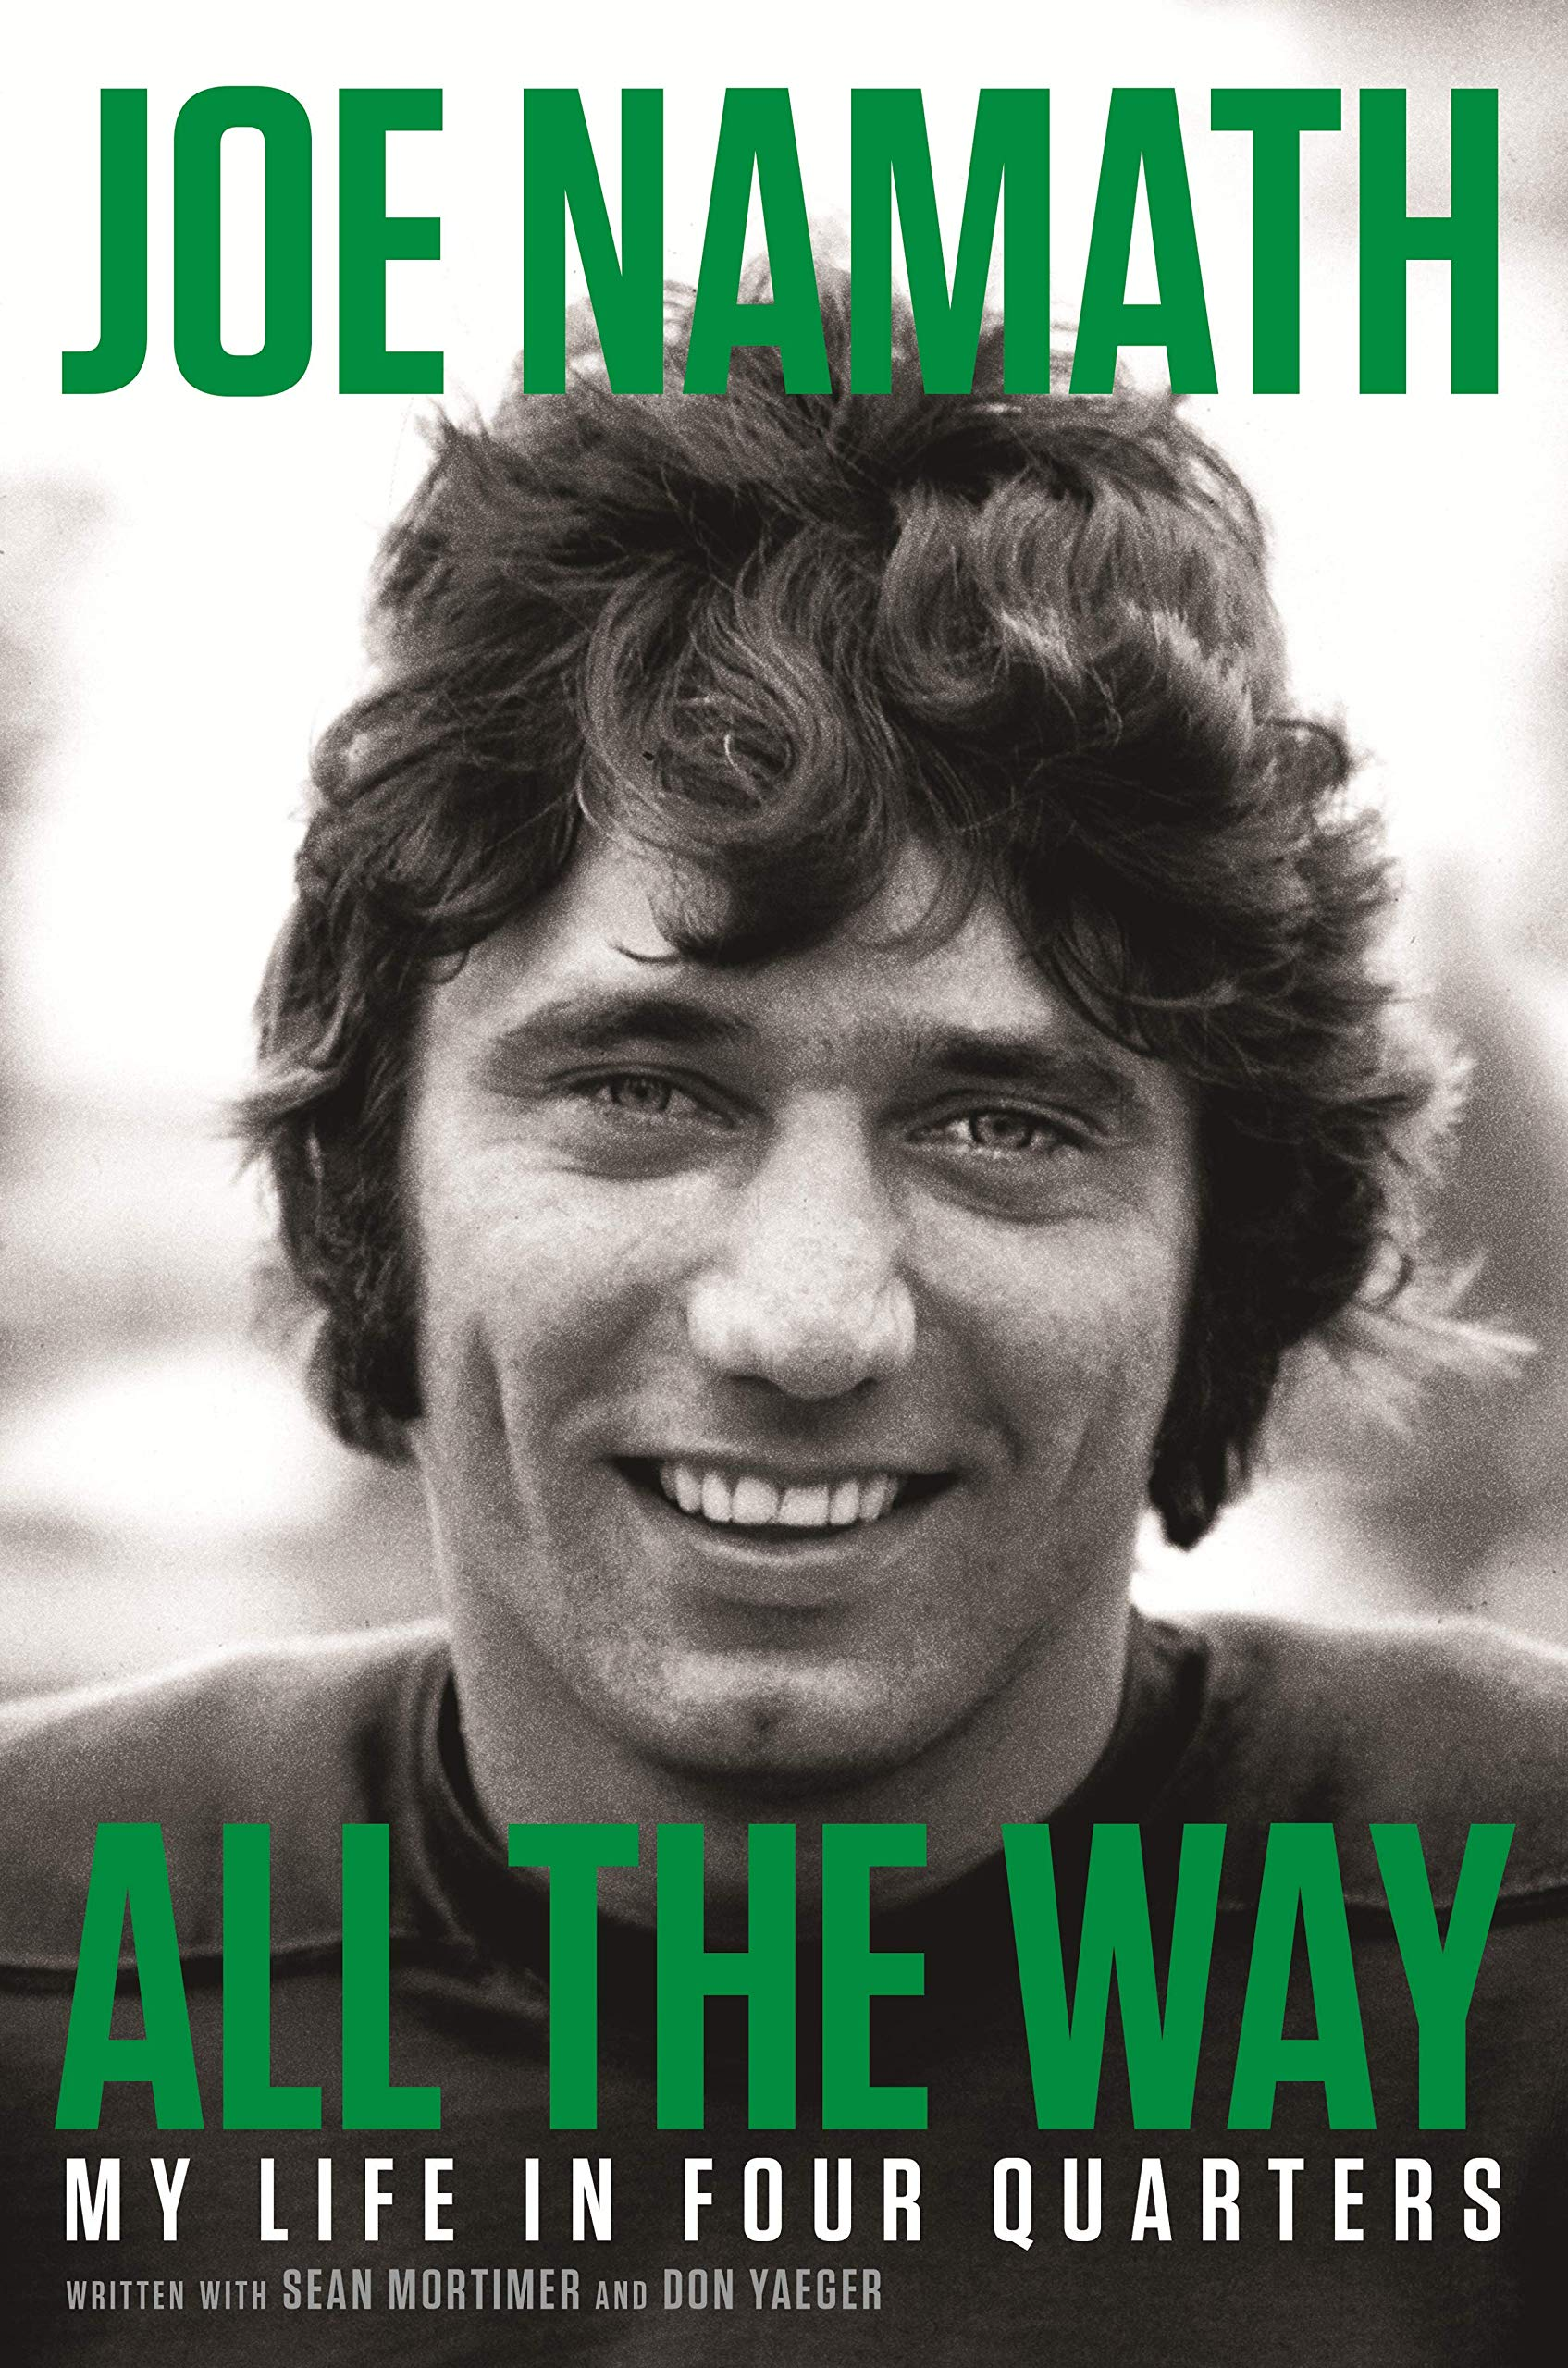 c2ff3d98442 All the Way: My Life in Four Quarters Hardcover – May 7, 2019. by Joe Namath  ...